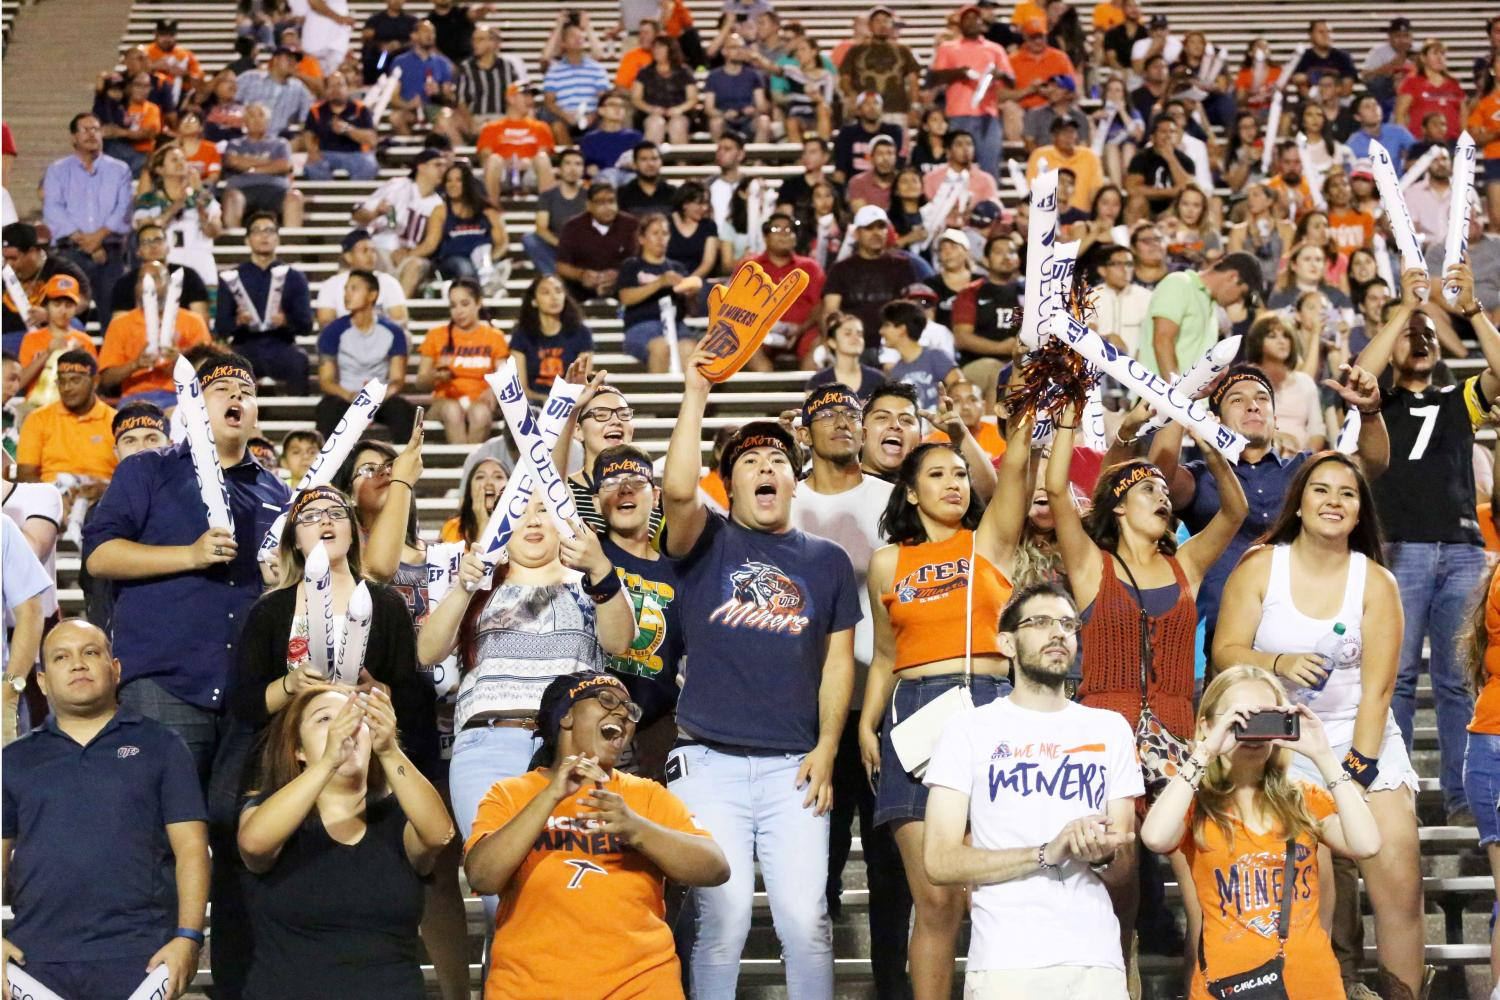 The student section at the UTEP football games has been declining in recent years.